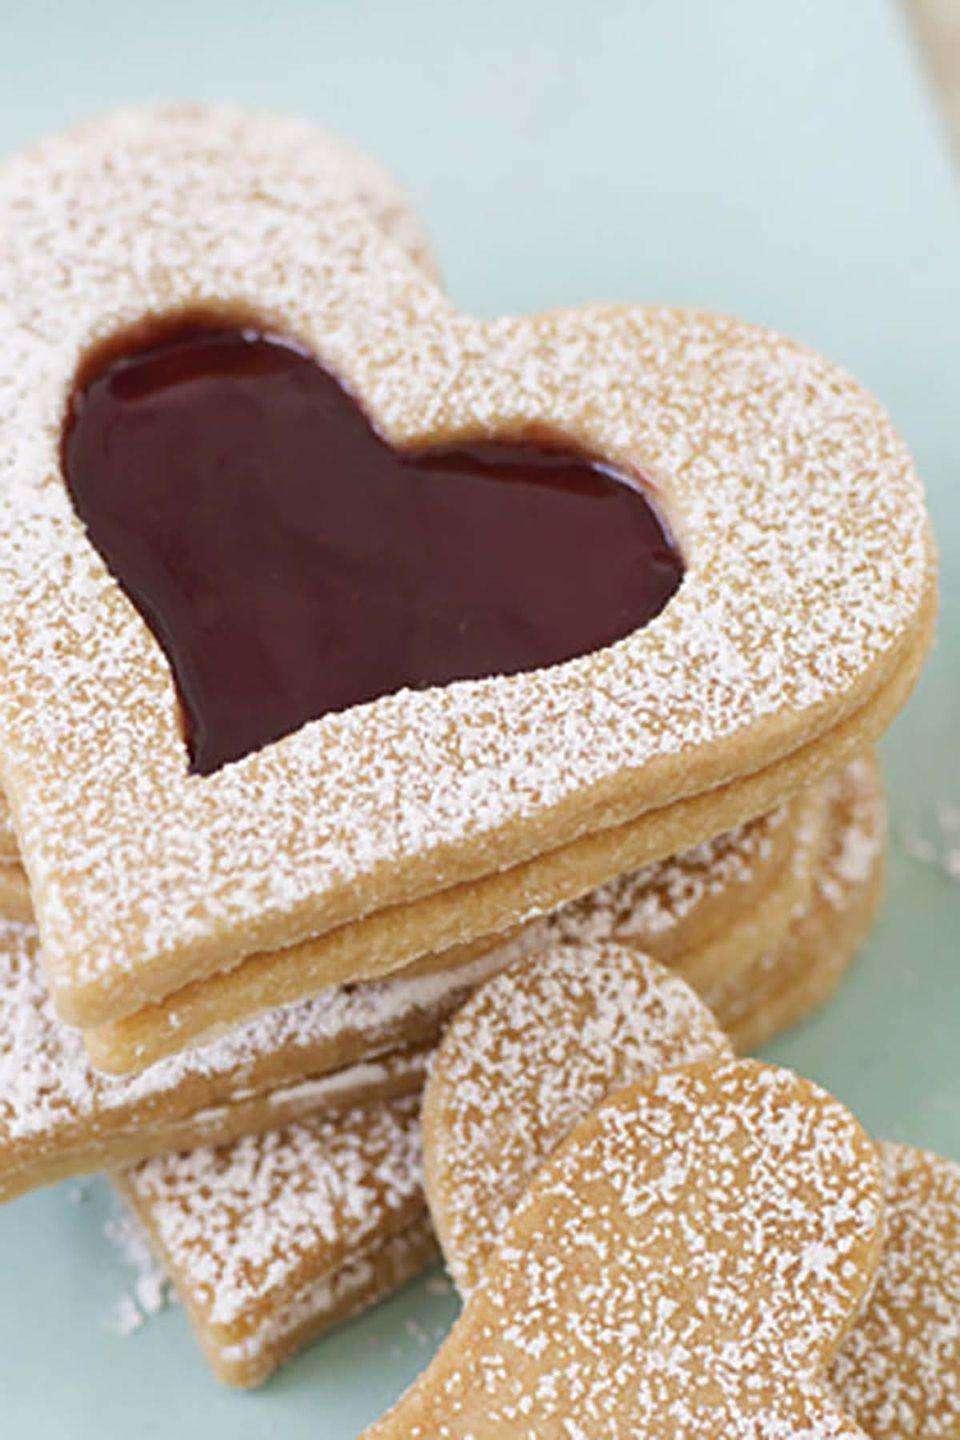 "<p>Show your love for mom with these jam-filled, buttery-vanilla hearts, coated with a sprinkle of confectioners' sugar for added sweetness.</p><p><strong><a href=""https://www.countryliving.com/food-drinks/recipes/a6582/vanilla-shortbread-hearts/"" rel=""nofollow noopener"" target=""_blank"" data-ylk=""slk:Get the recipe"" class=""link rapid-noclick-resp"">Get the recipe</a>.</strong></p>"